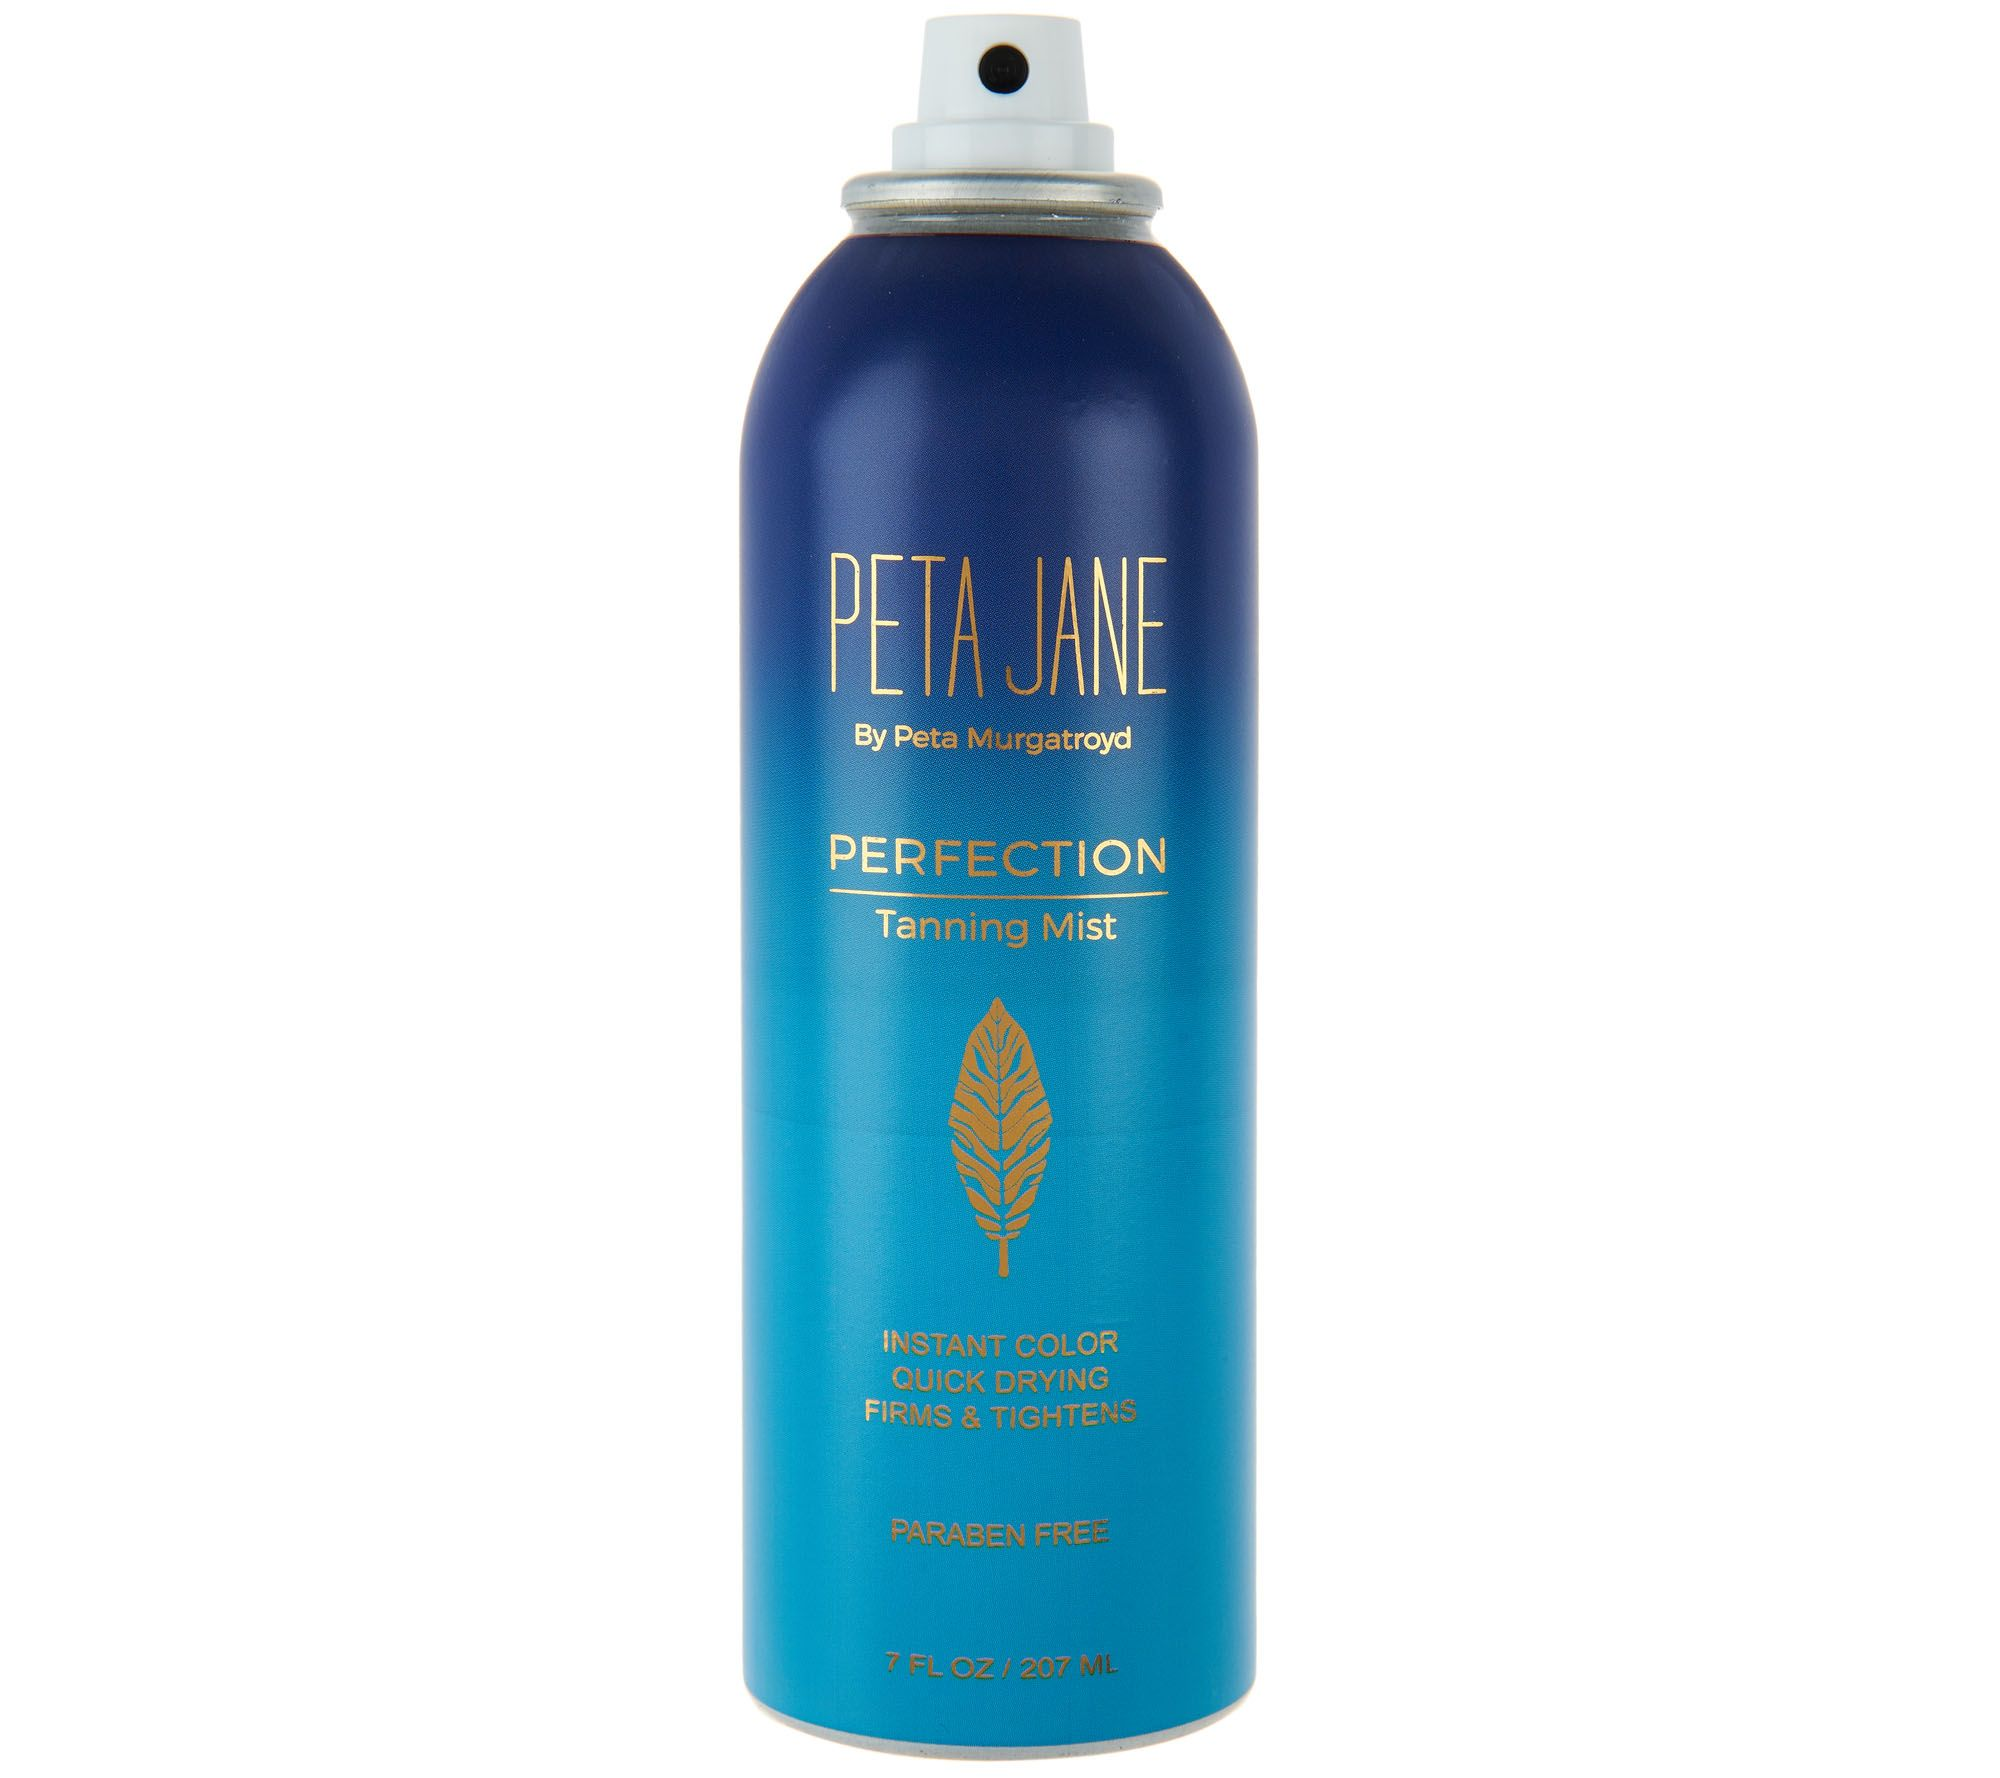 New customer qvc promo code - Peta Jane Perfection Tanning Mist By South Seas A297199